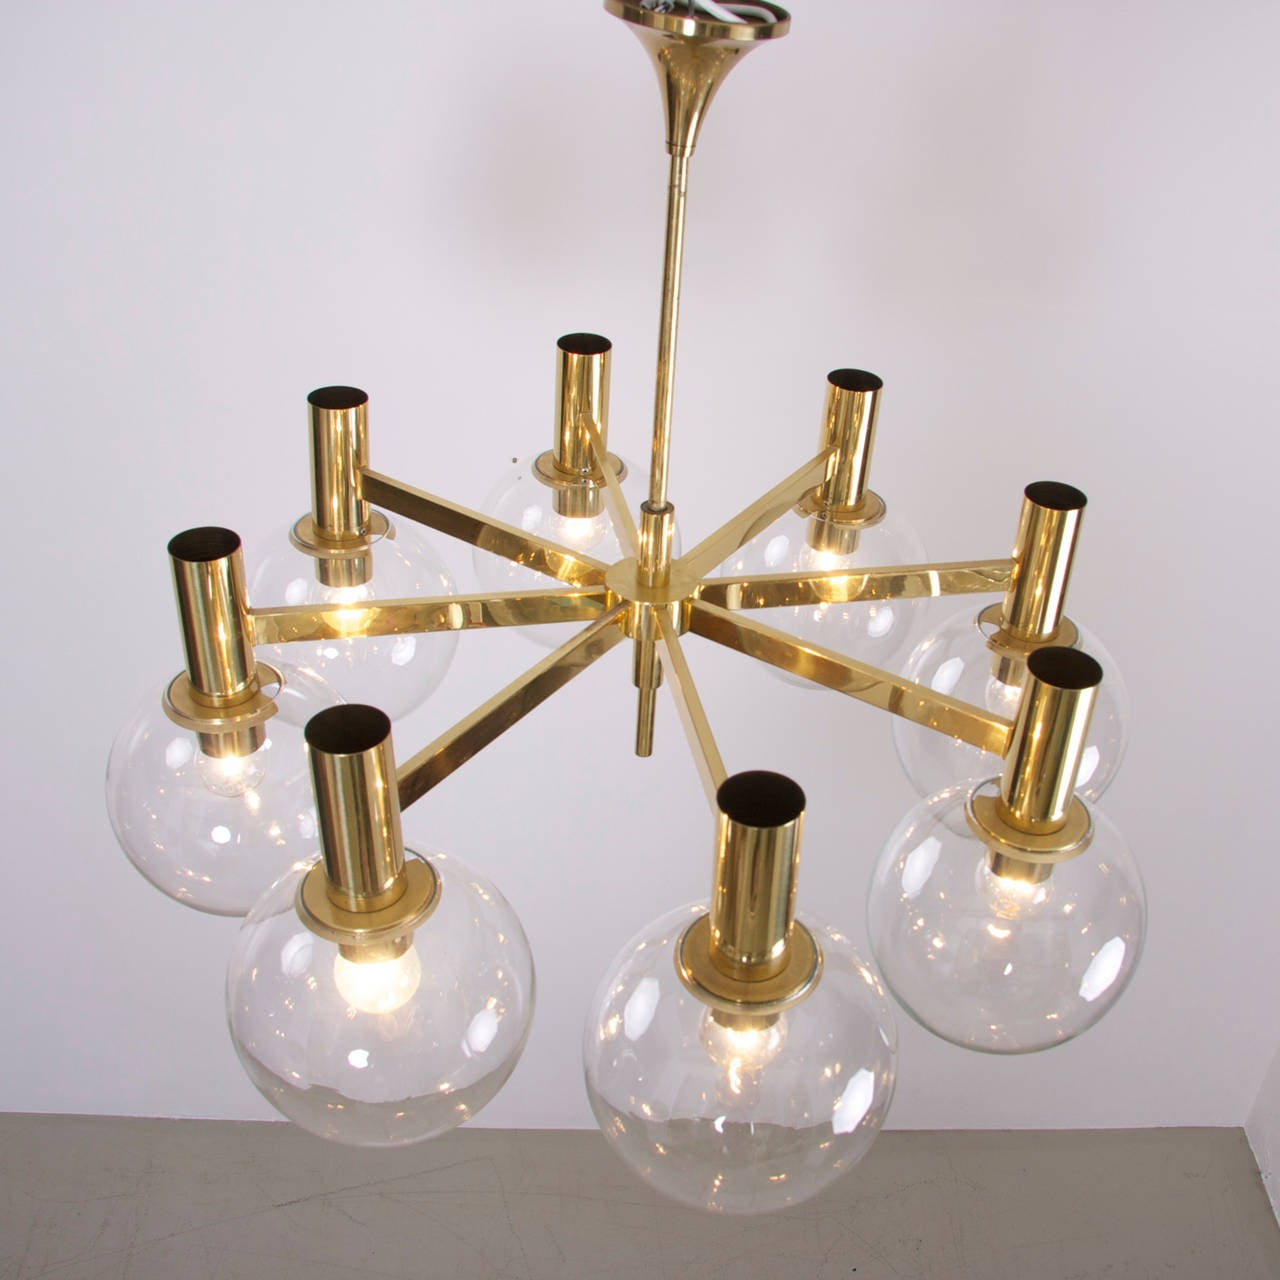 Extra Large Brass Chandelier With Eight Arms By Ott International For Sale At